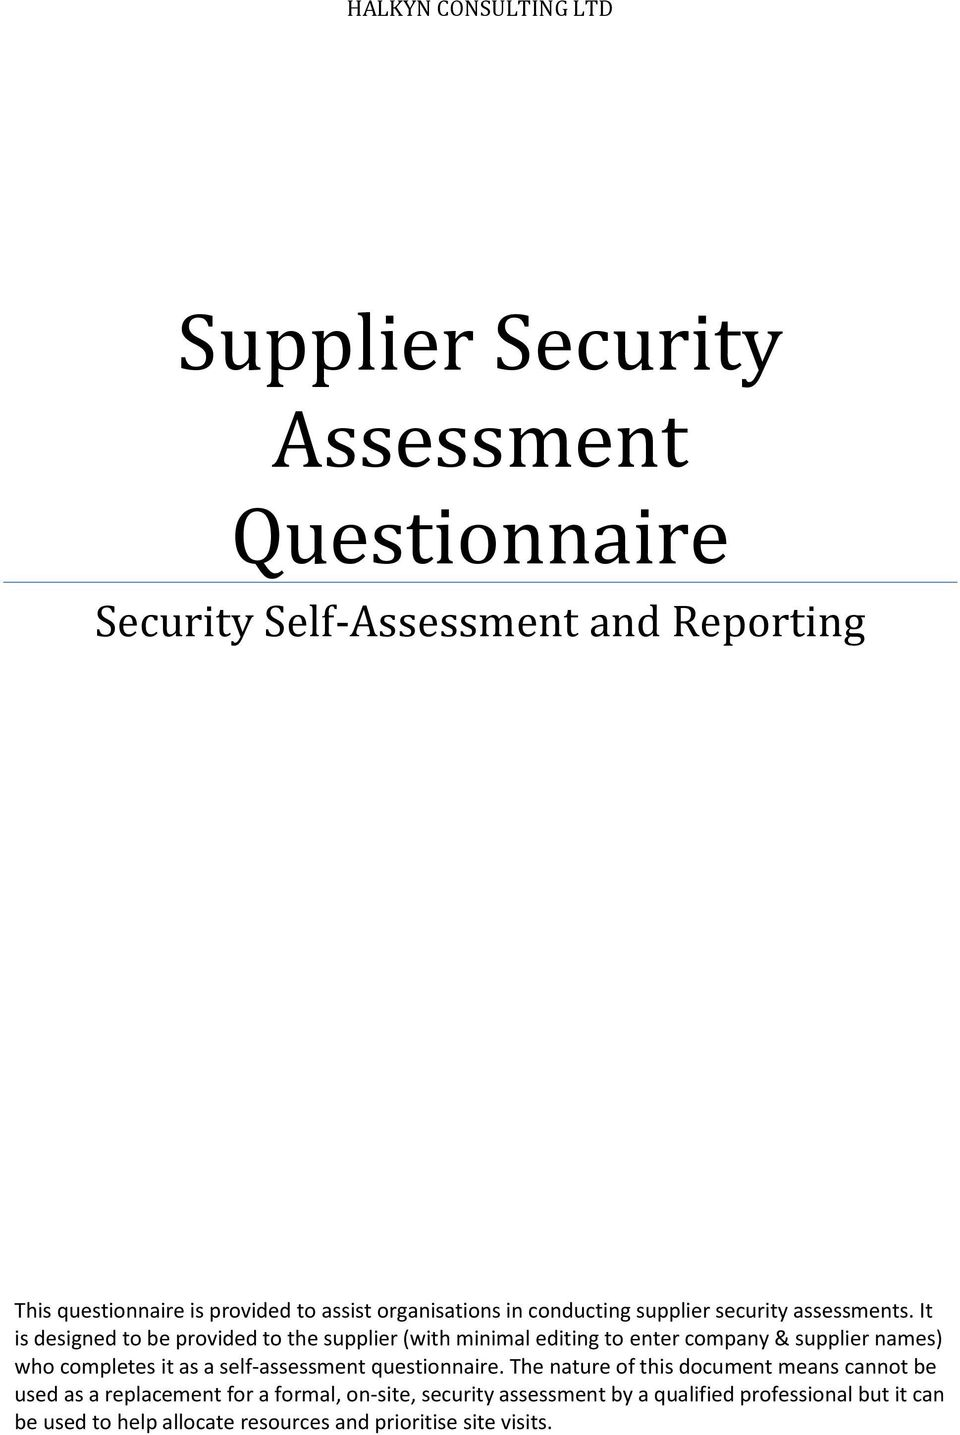 It is designed to be provided to the supplier (with minimal editing to enter company & supplier names) who completes it as a self-assessment